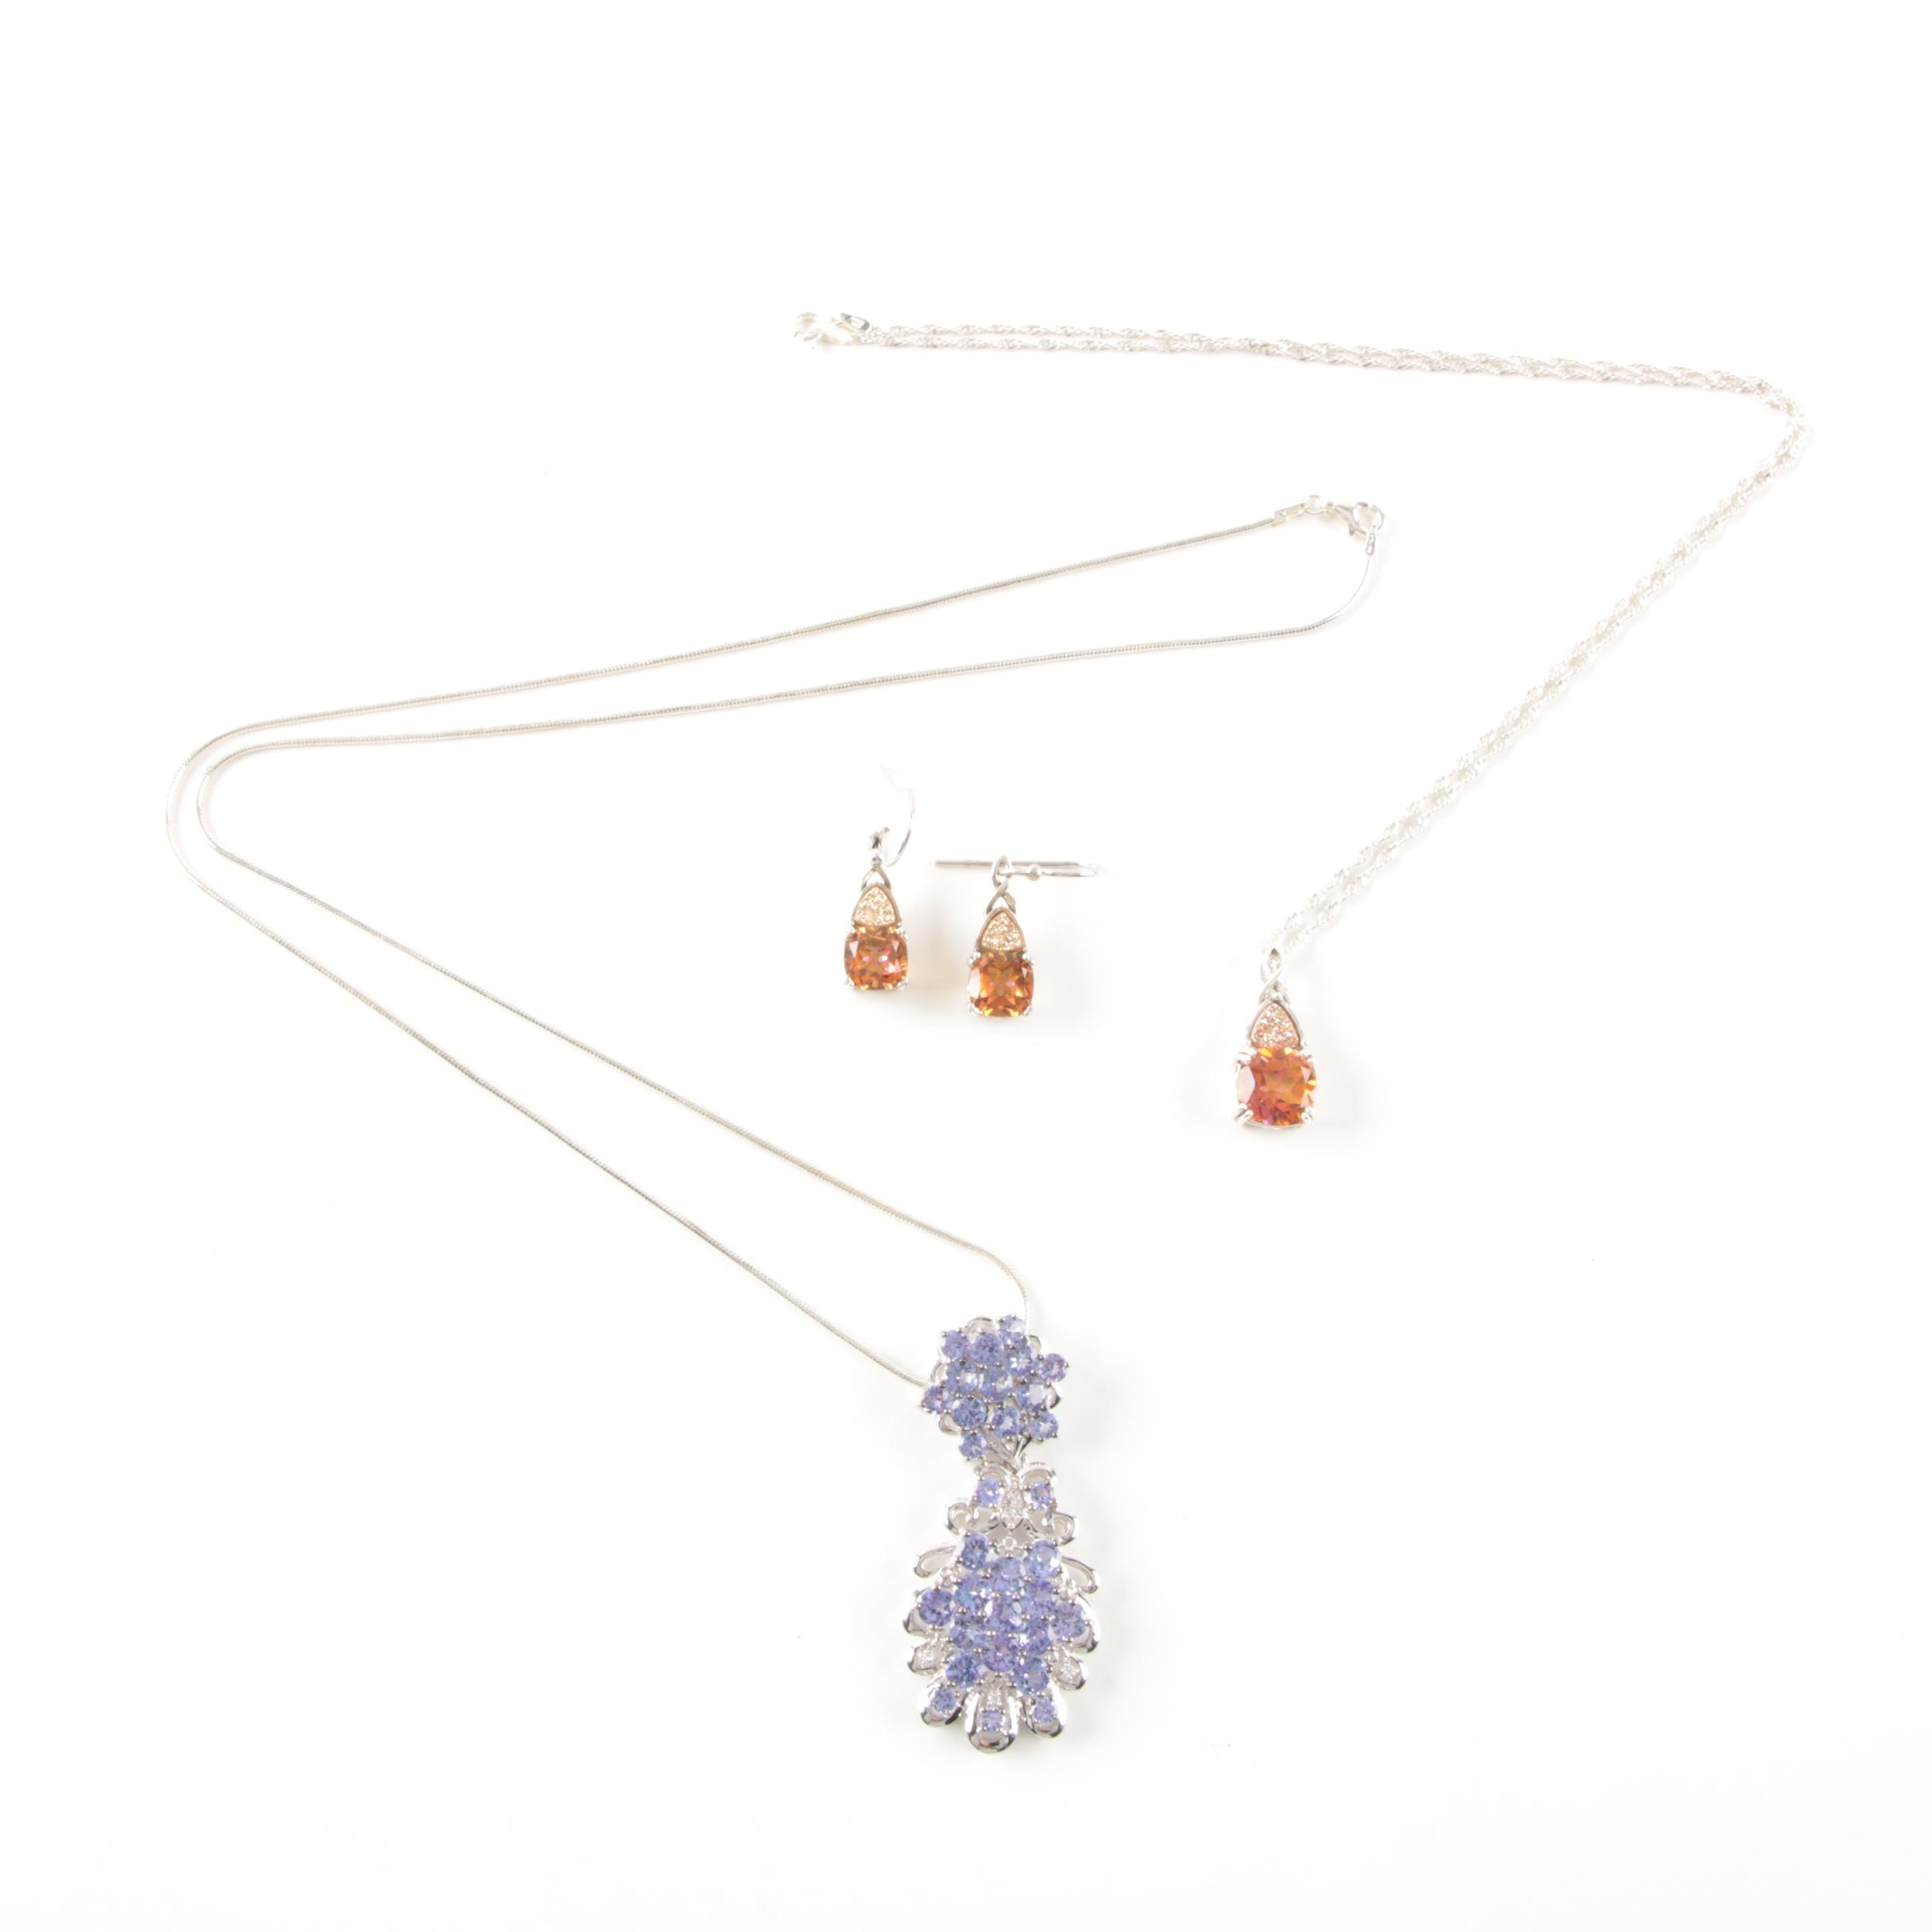 Sterling Silver and Gemstone Necklaces and Pair of Earrings